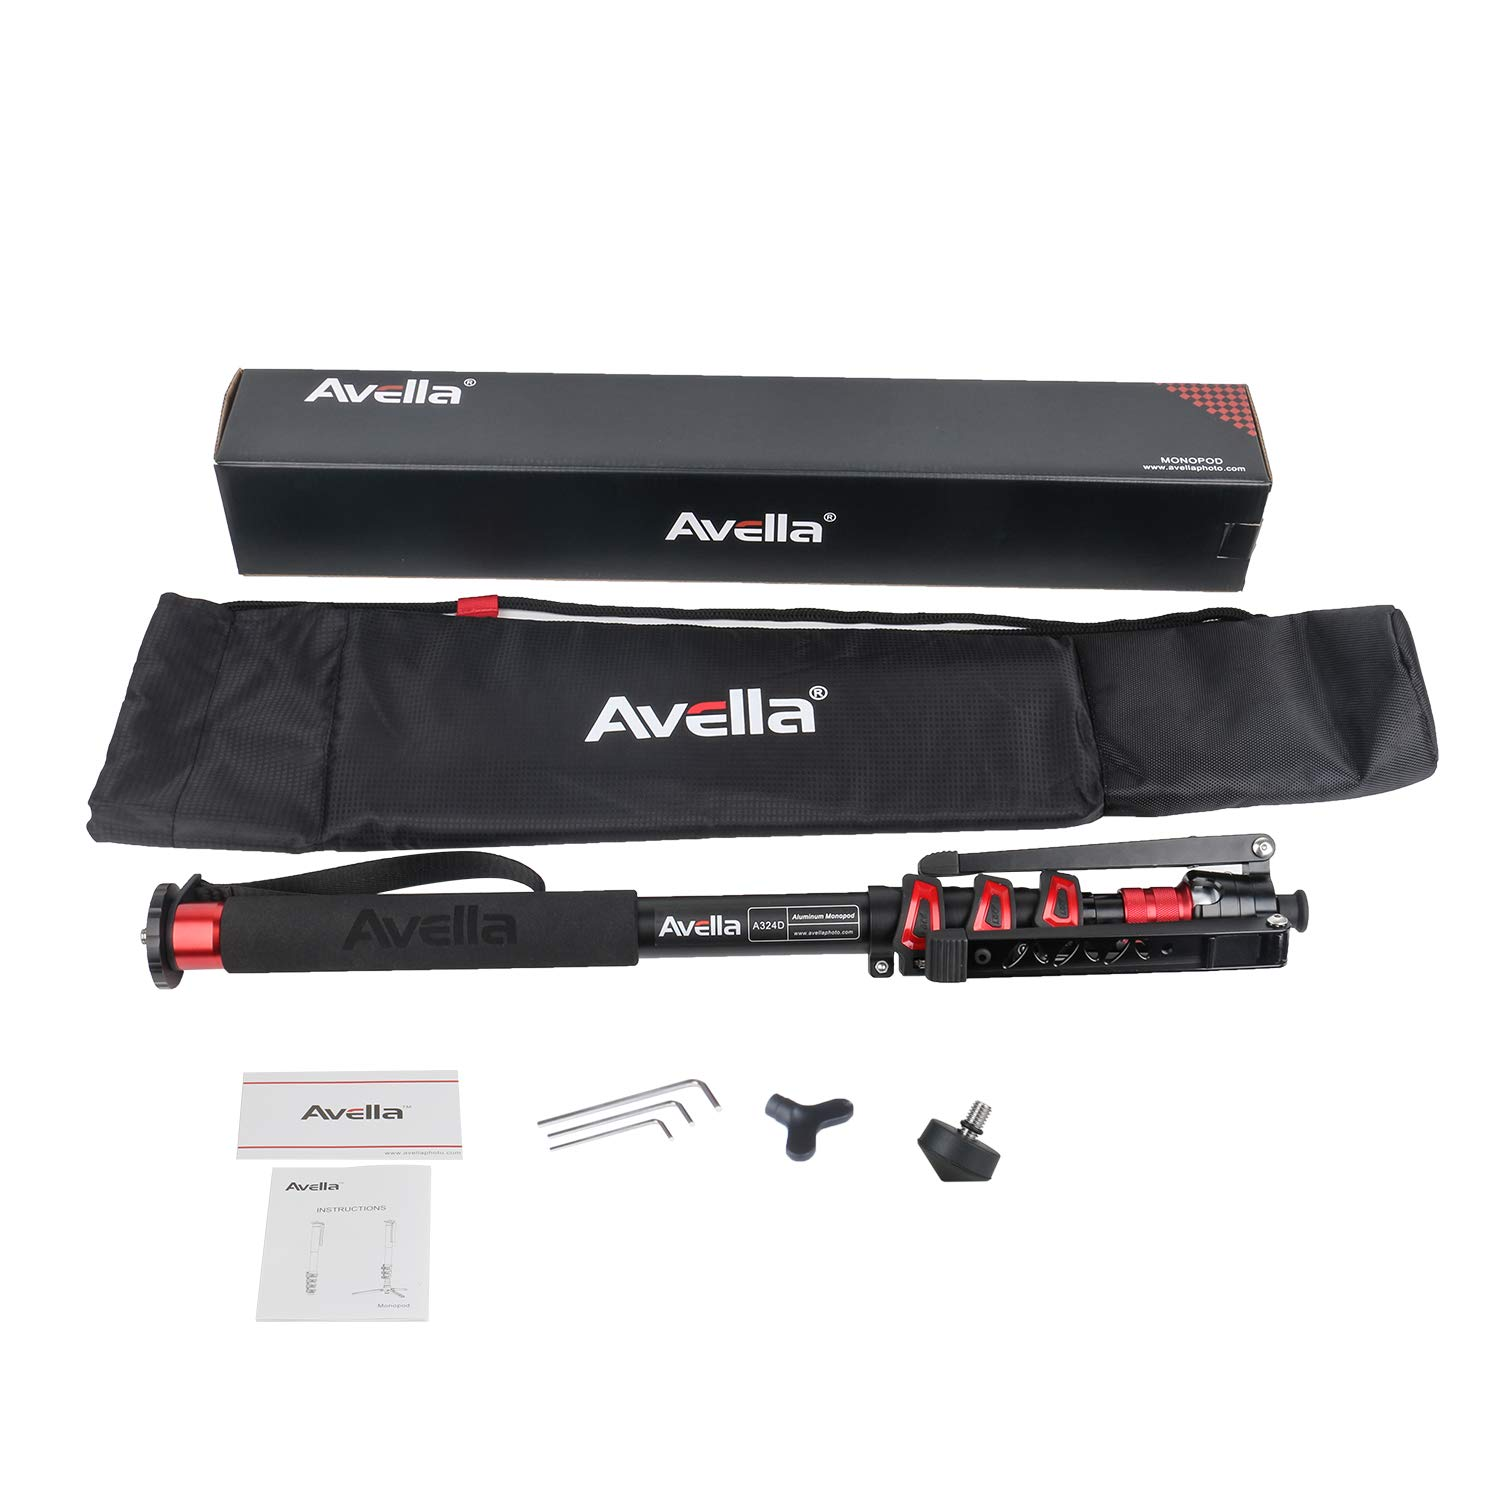 Avella A324D Aluminum 67 Inch Video Monopod 4 Section with Tripod Feet Compatible for DSLR Camera Camcorder